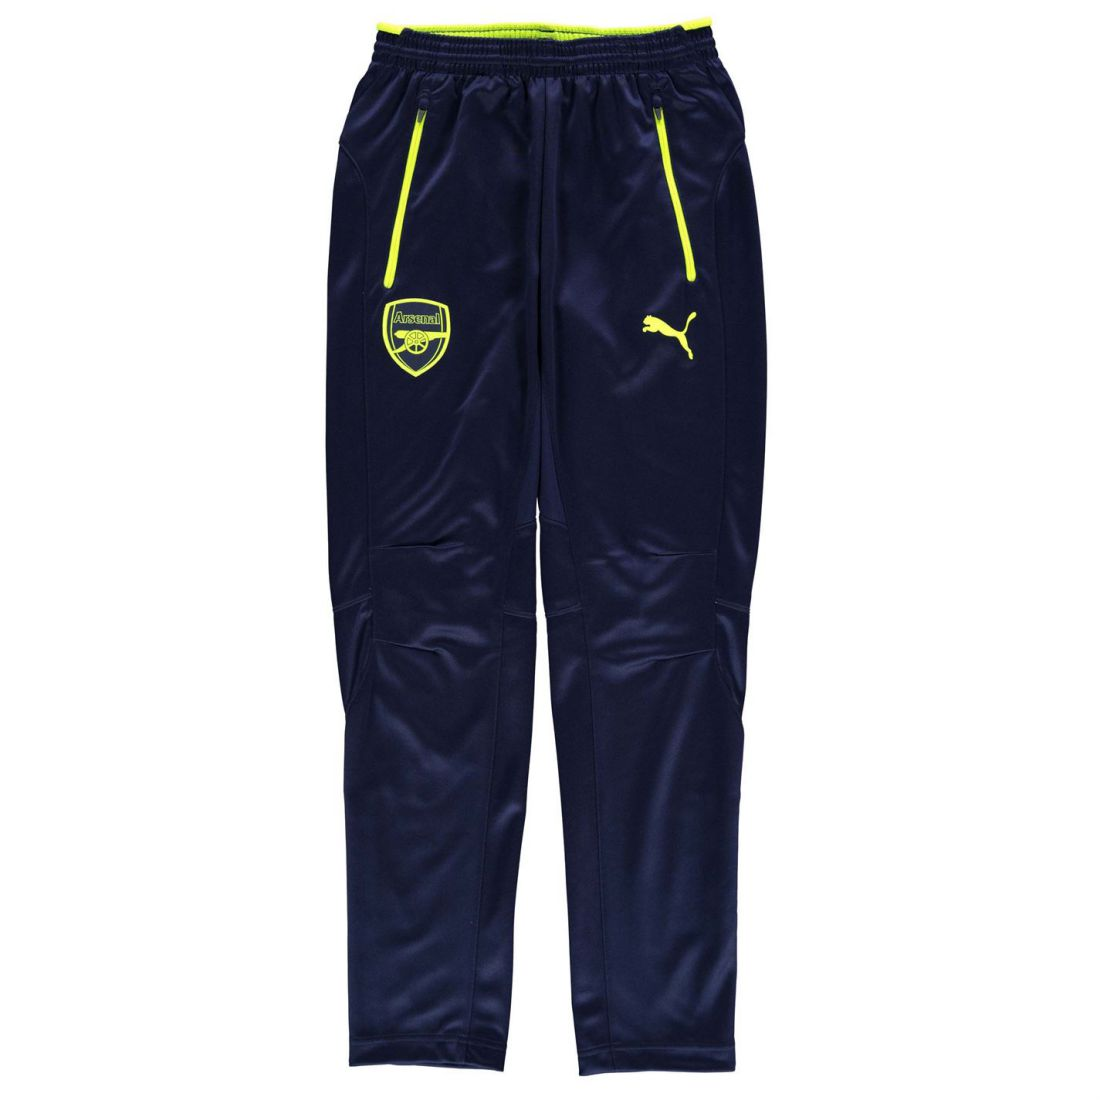 494c86d1d63a Image is loading Puma-Childrens-Arsenal-Tracksuit-Bottoms-Boys-Trousers- Pants-